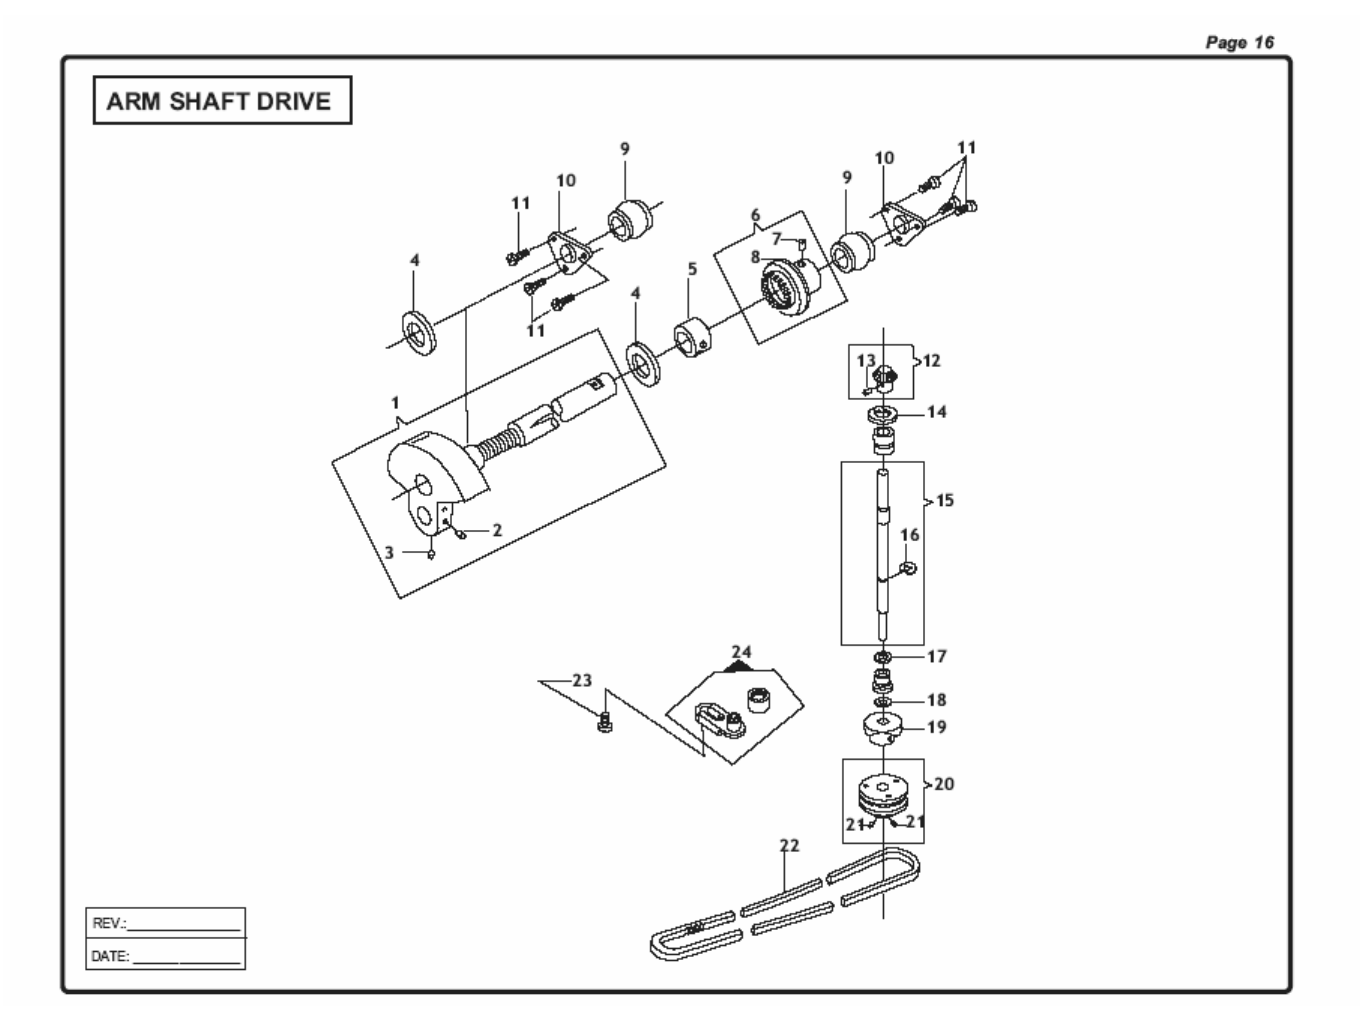 Page 19 of Singer Sewing Machine CG-550 User Guide